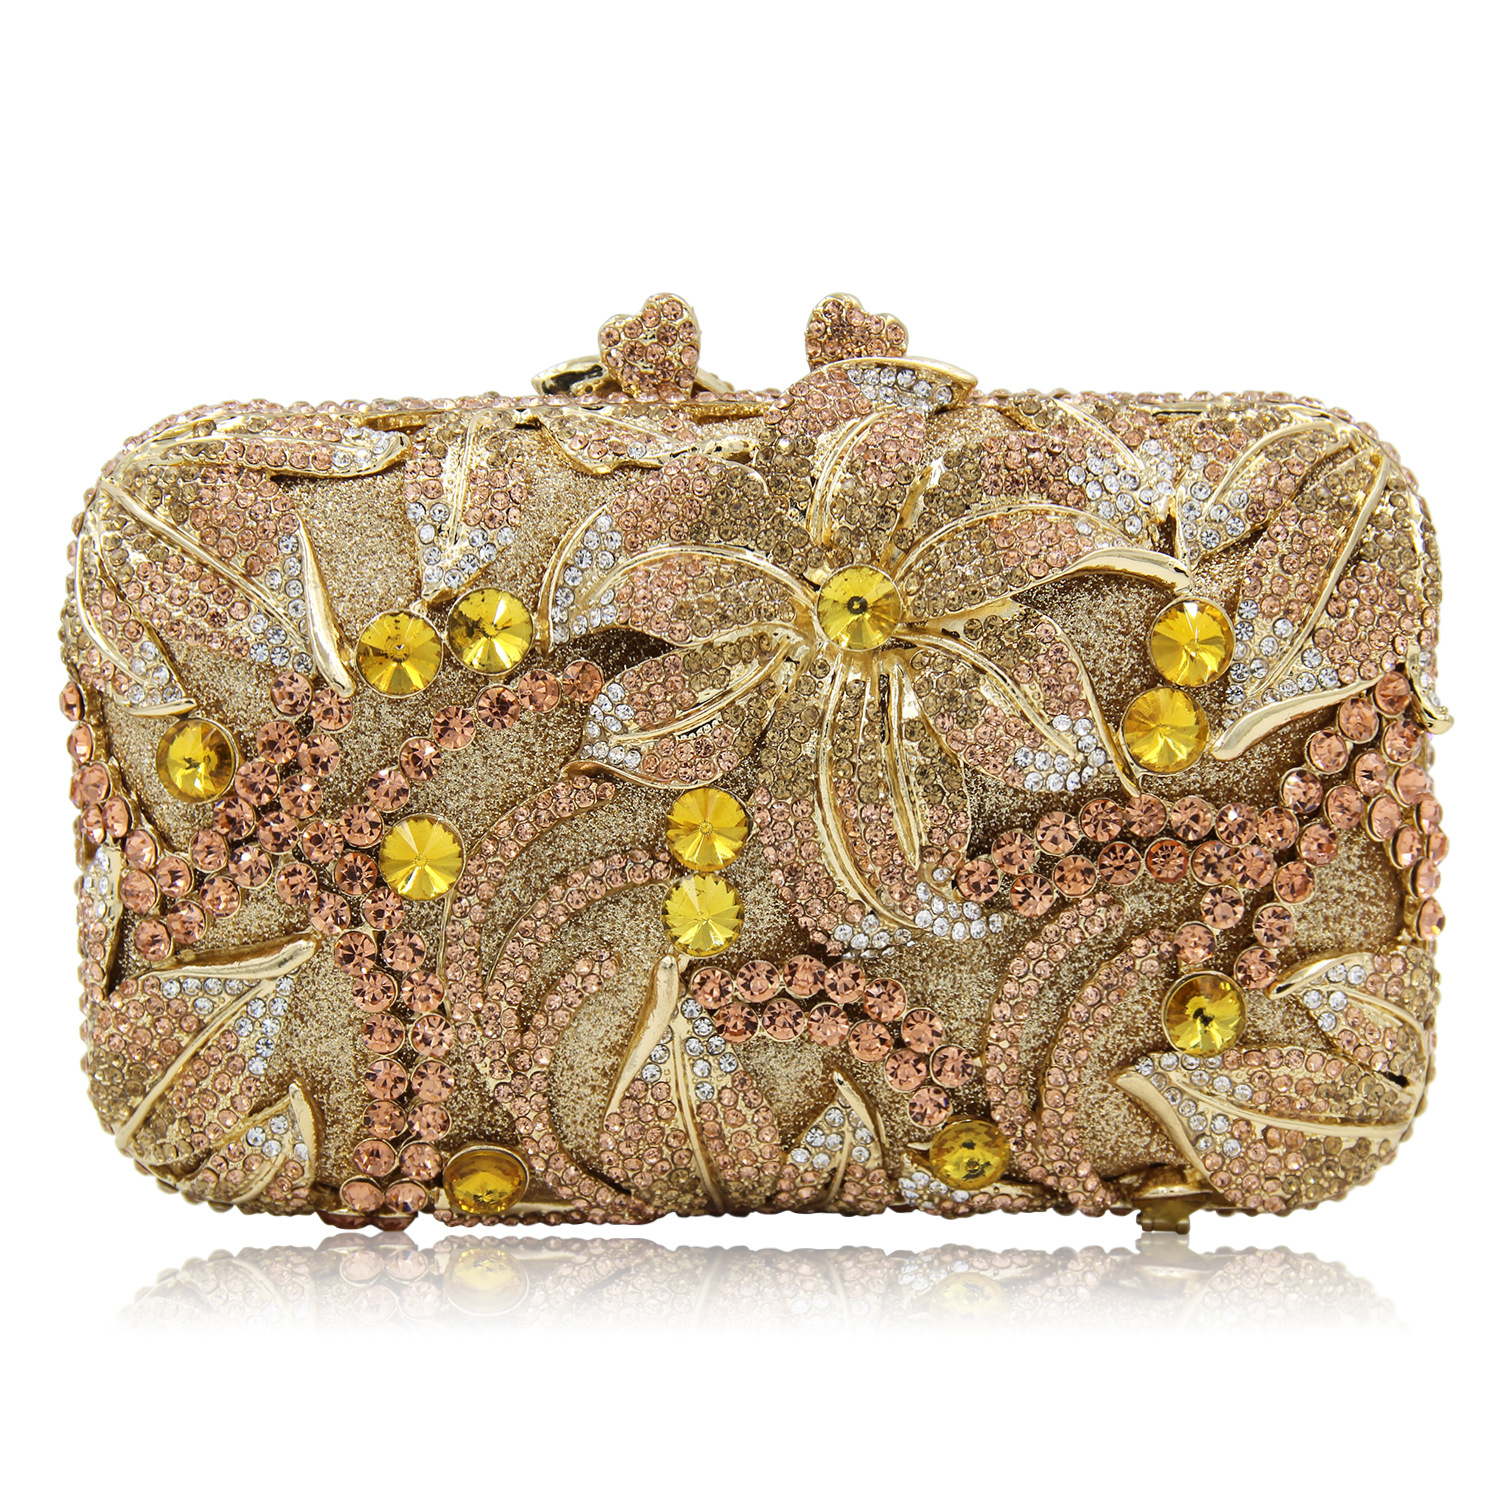 2018 New Luxury Ladies Clutch Evening Bags Gold Crystal Flower Clutch Bags Banquet Bags Women Soiree Handbag Bling Prom Bag